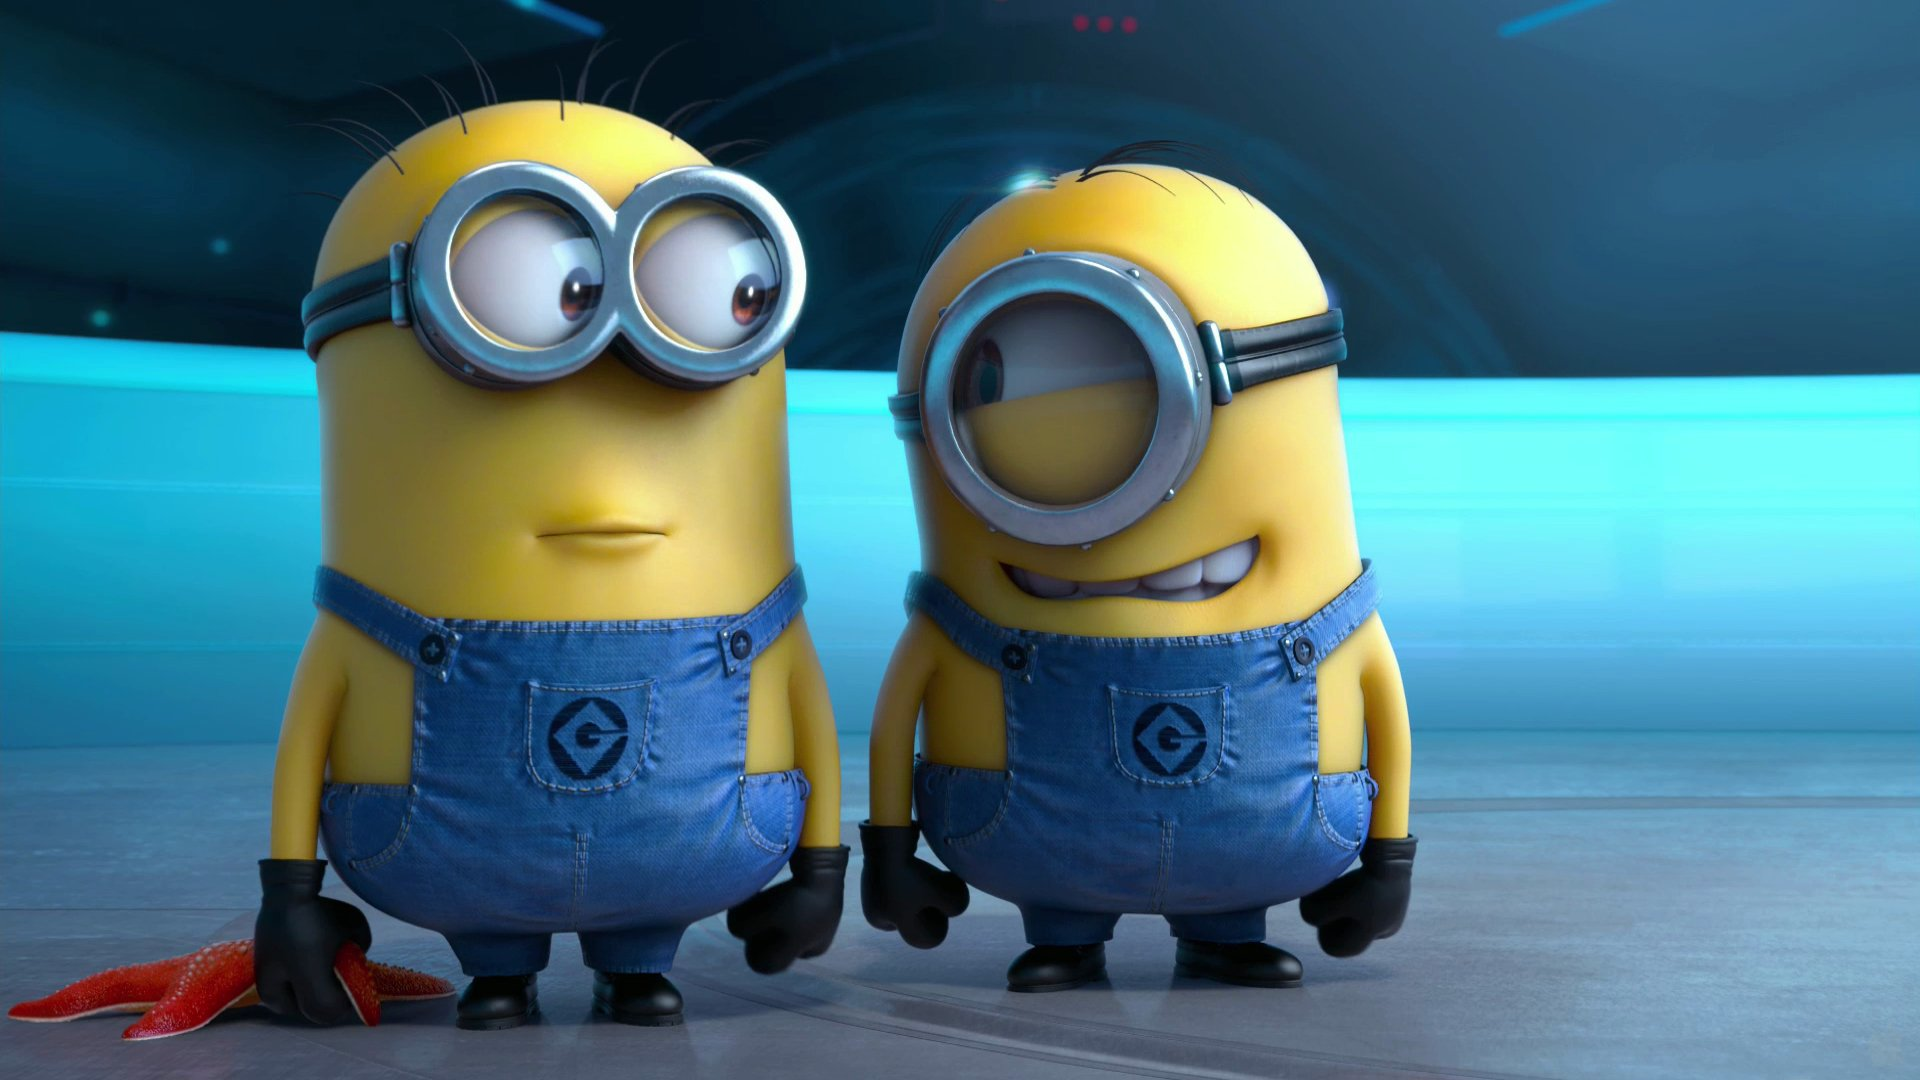 218 despicable me 2 hd wallpapers | background images - wallpaper abyss